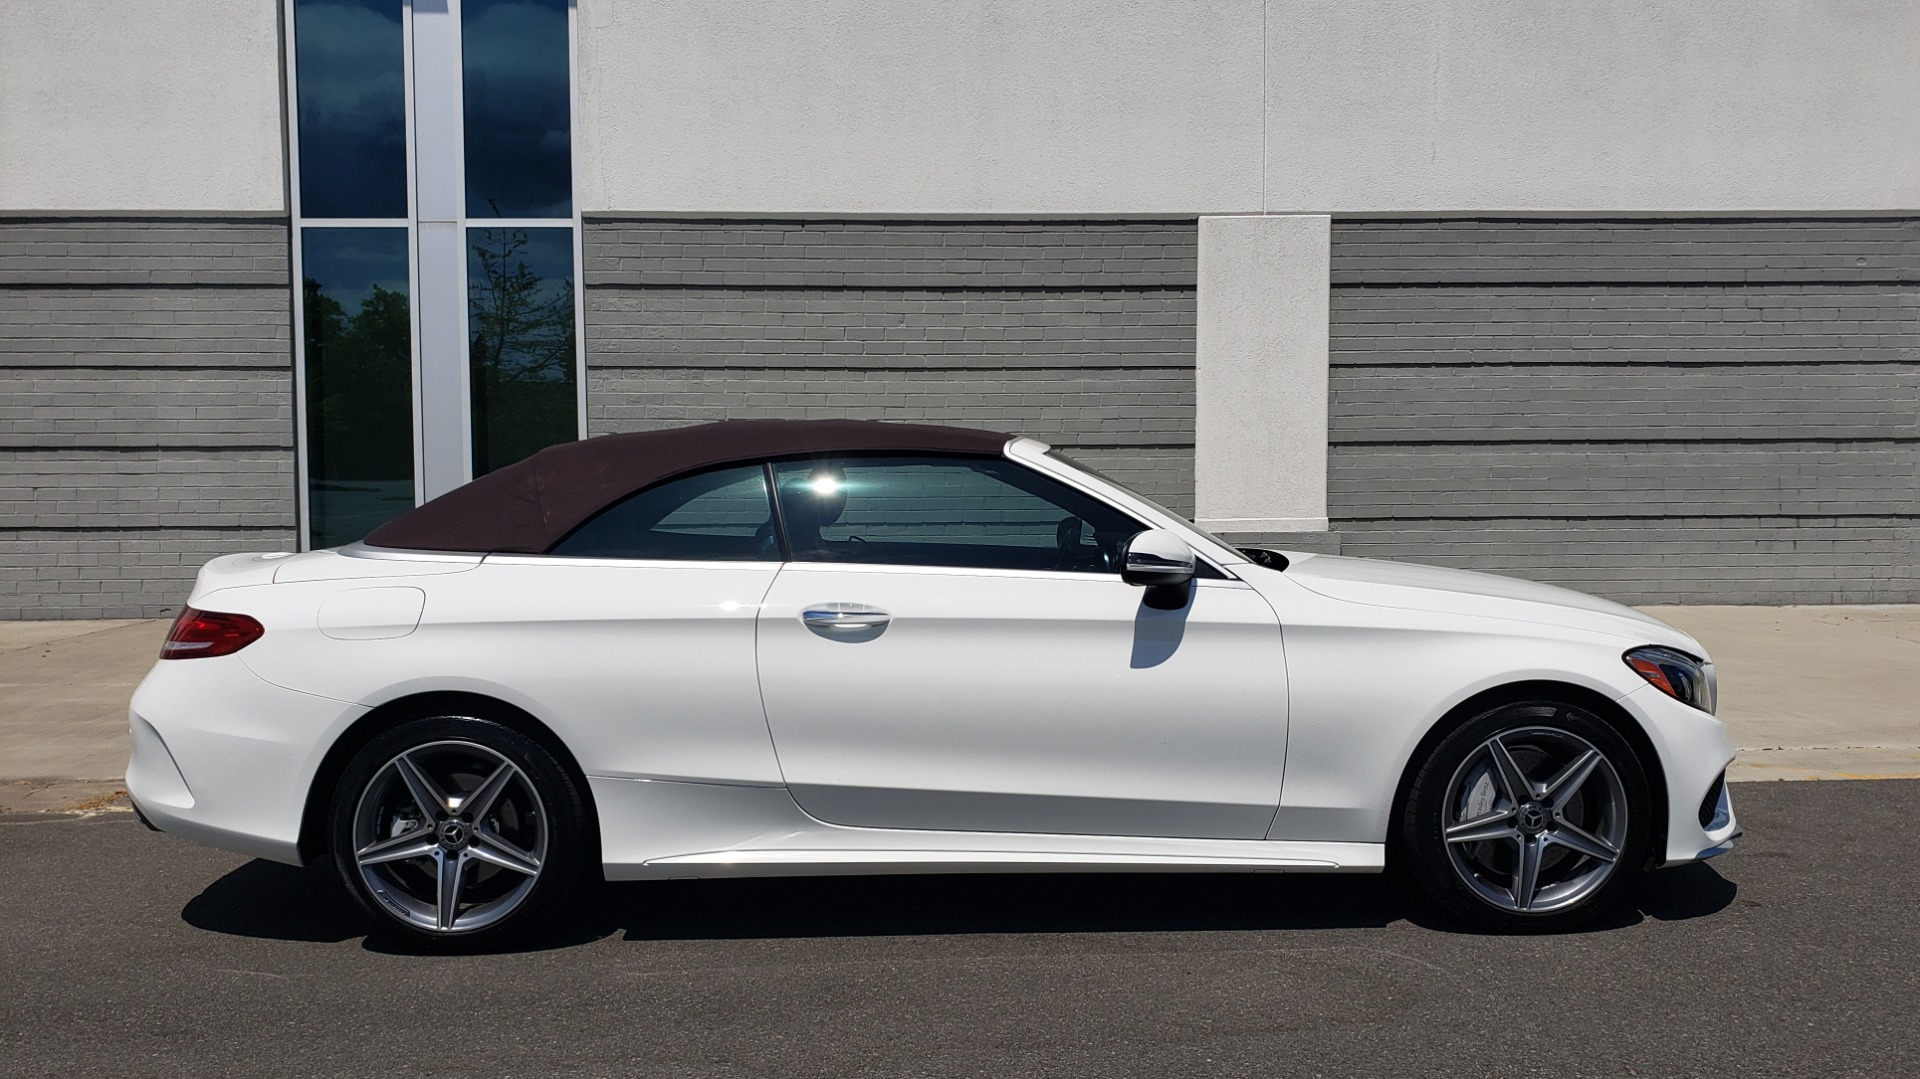 Used 2018 Mercedes-Benz C-CLASS C 300 CABRIOLET PREMIUM / AWD / BURMESTER SND / APPLE / REARVIEW for sale $44,995 at Formula Imports in Charlotte NC 28227 18